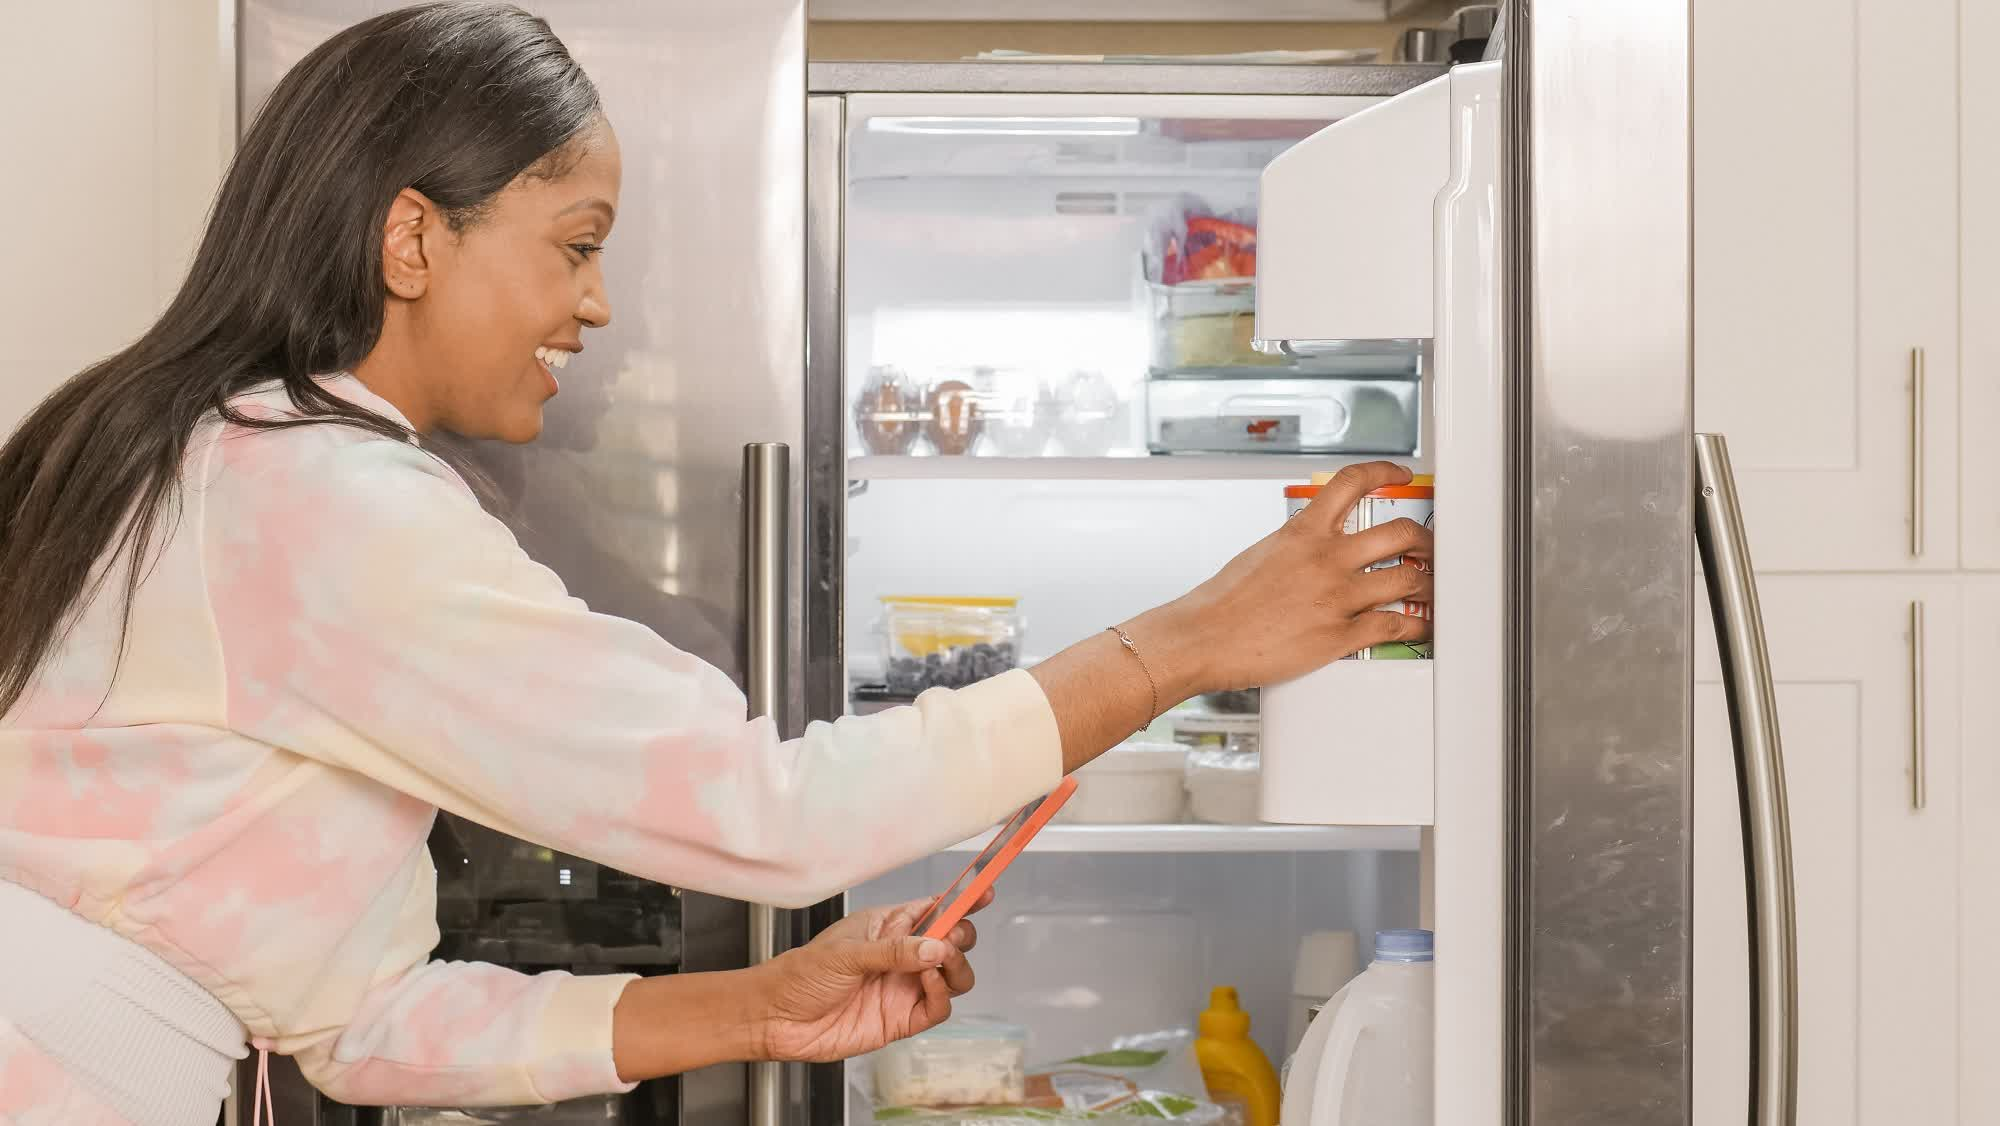 Amazon reportedly working on a smart fridge that tracks its contents